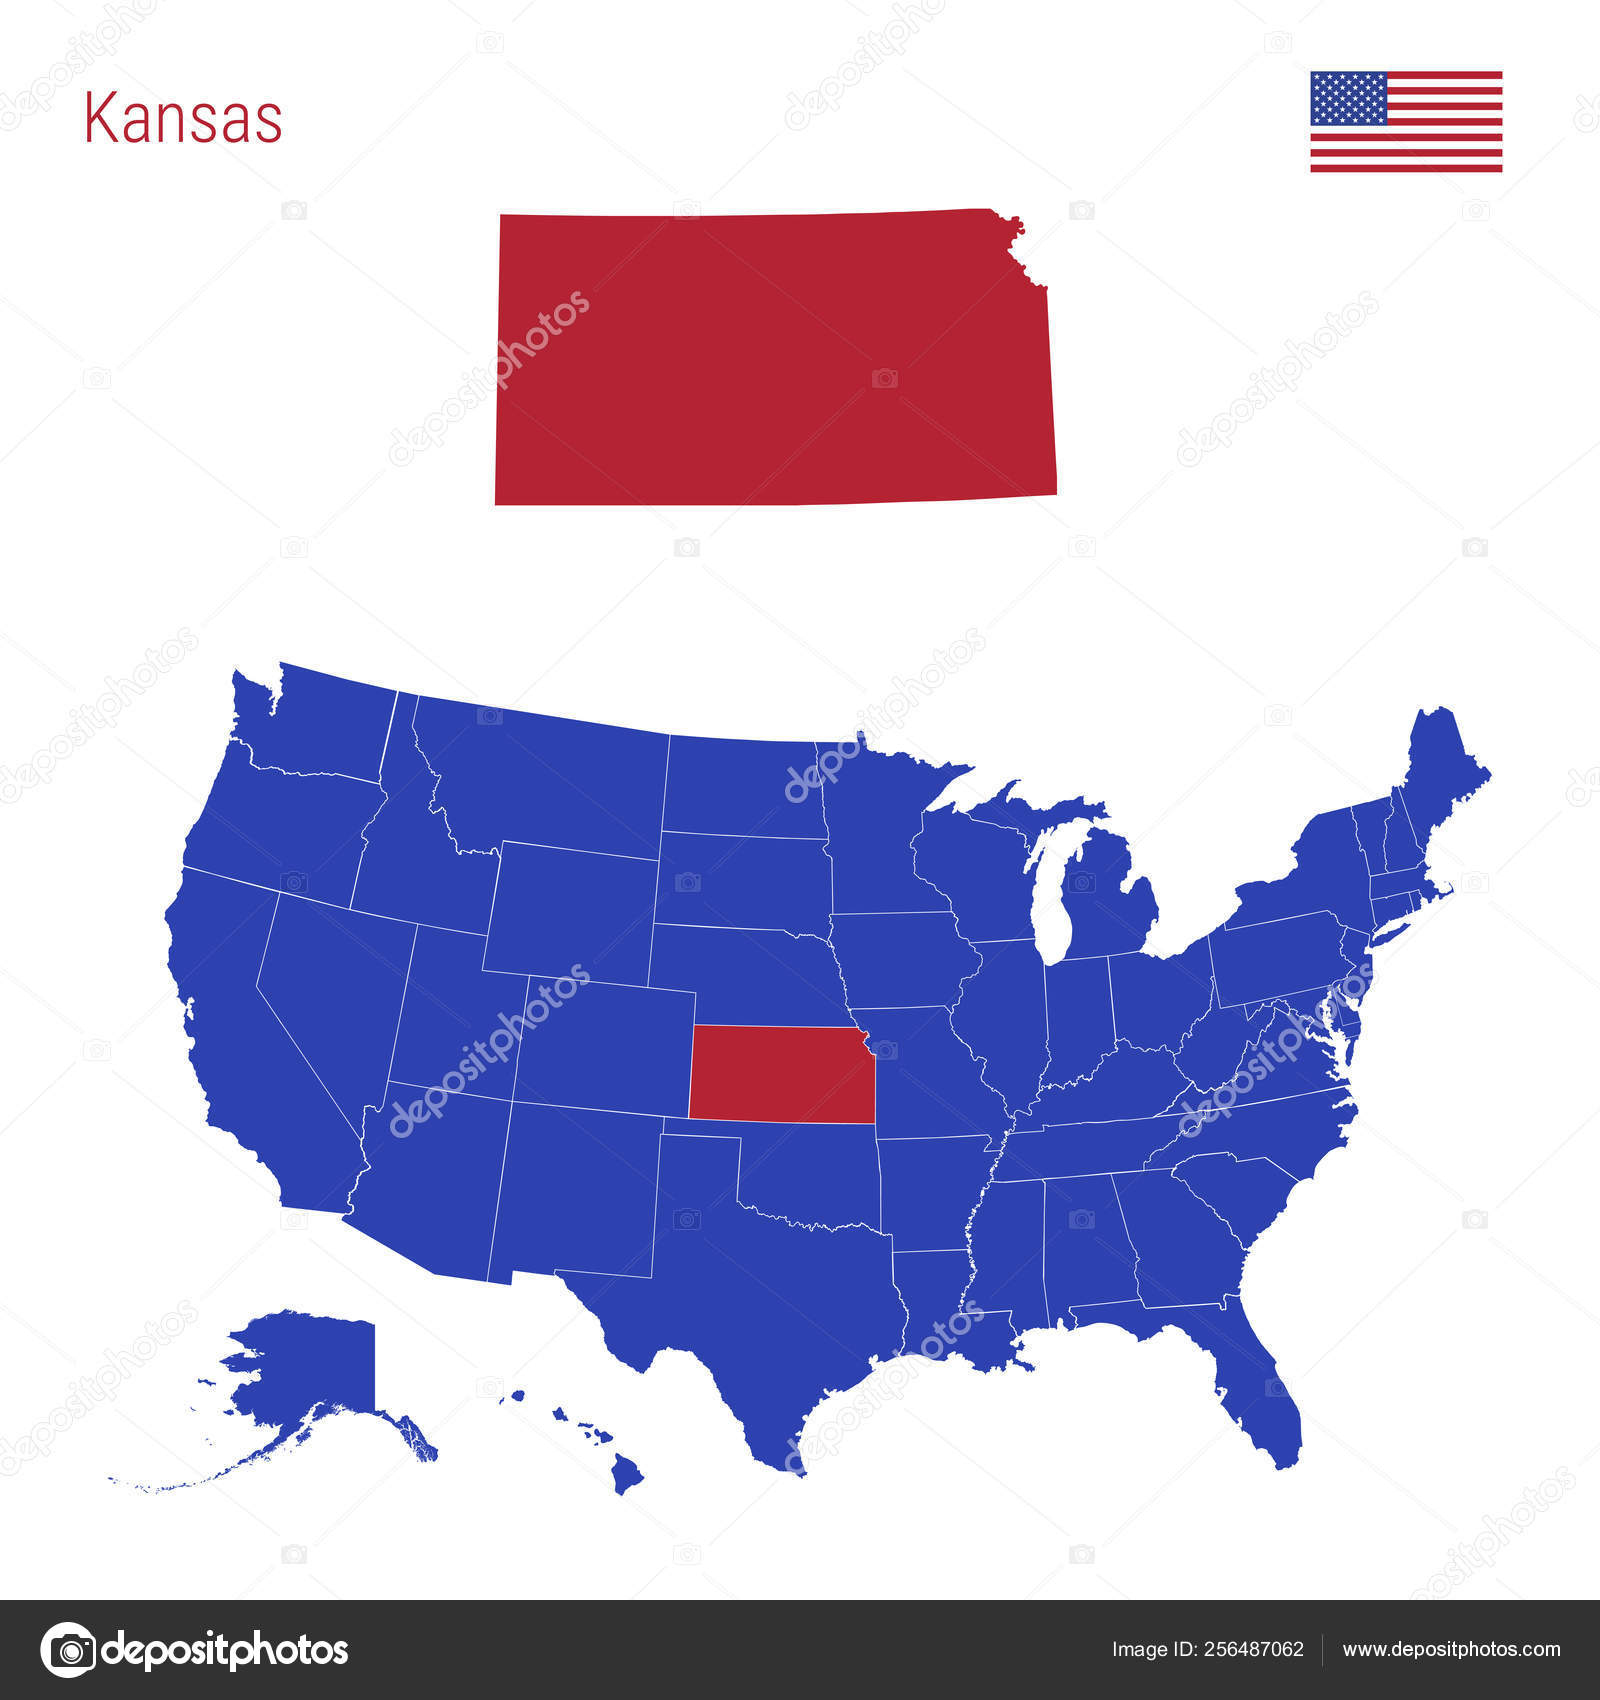 The State of Kansas is Highlighted in Red. Vector Map of the United on su kansas on map, kansas on america map, kansas on usa map, kansas is a part of the united states, state in washington dc on us map, state of kansas on us map, kansas state of the united states, kansas on world map, topeka on a us map, ks on a us map,